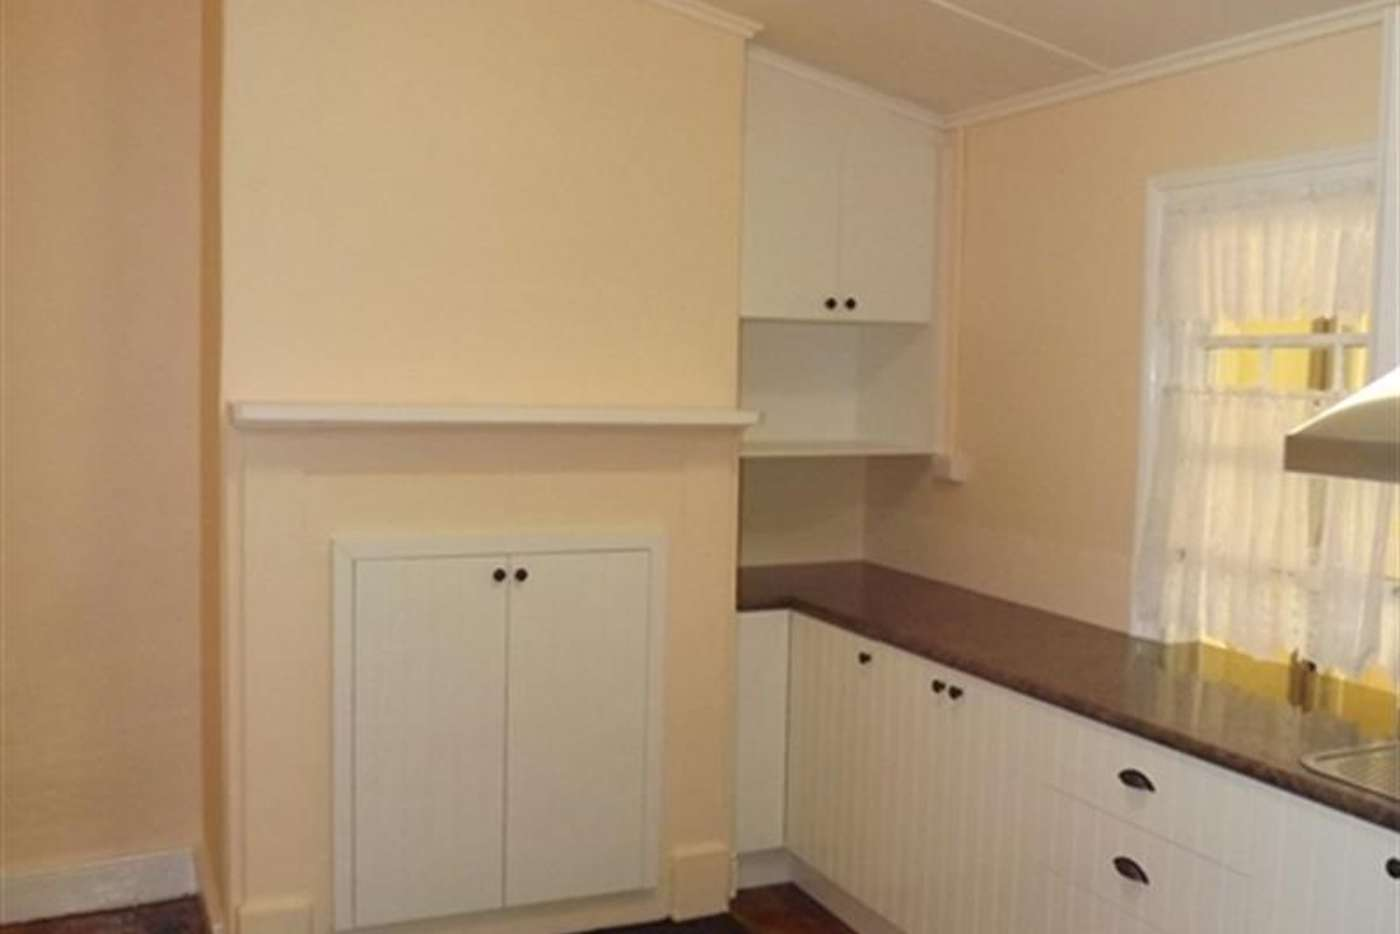 Seventh view of Homely house listing, 408 David Street, Albury NSW 2640